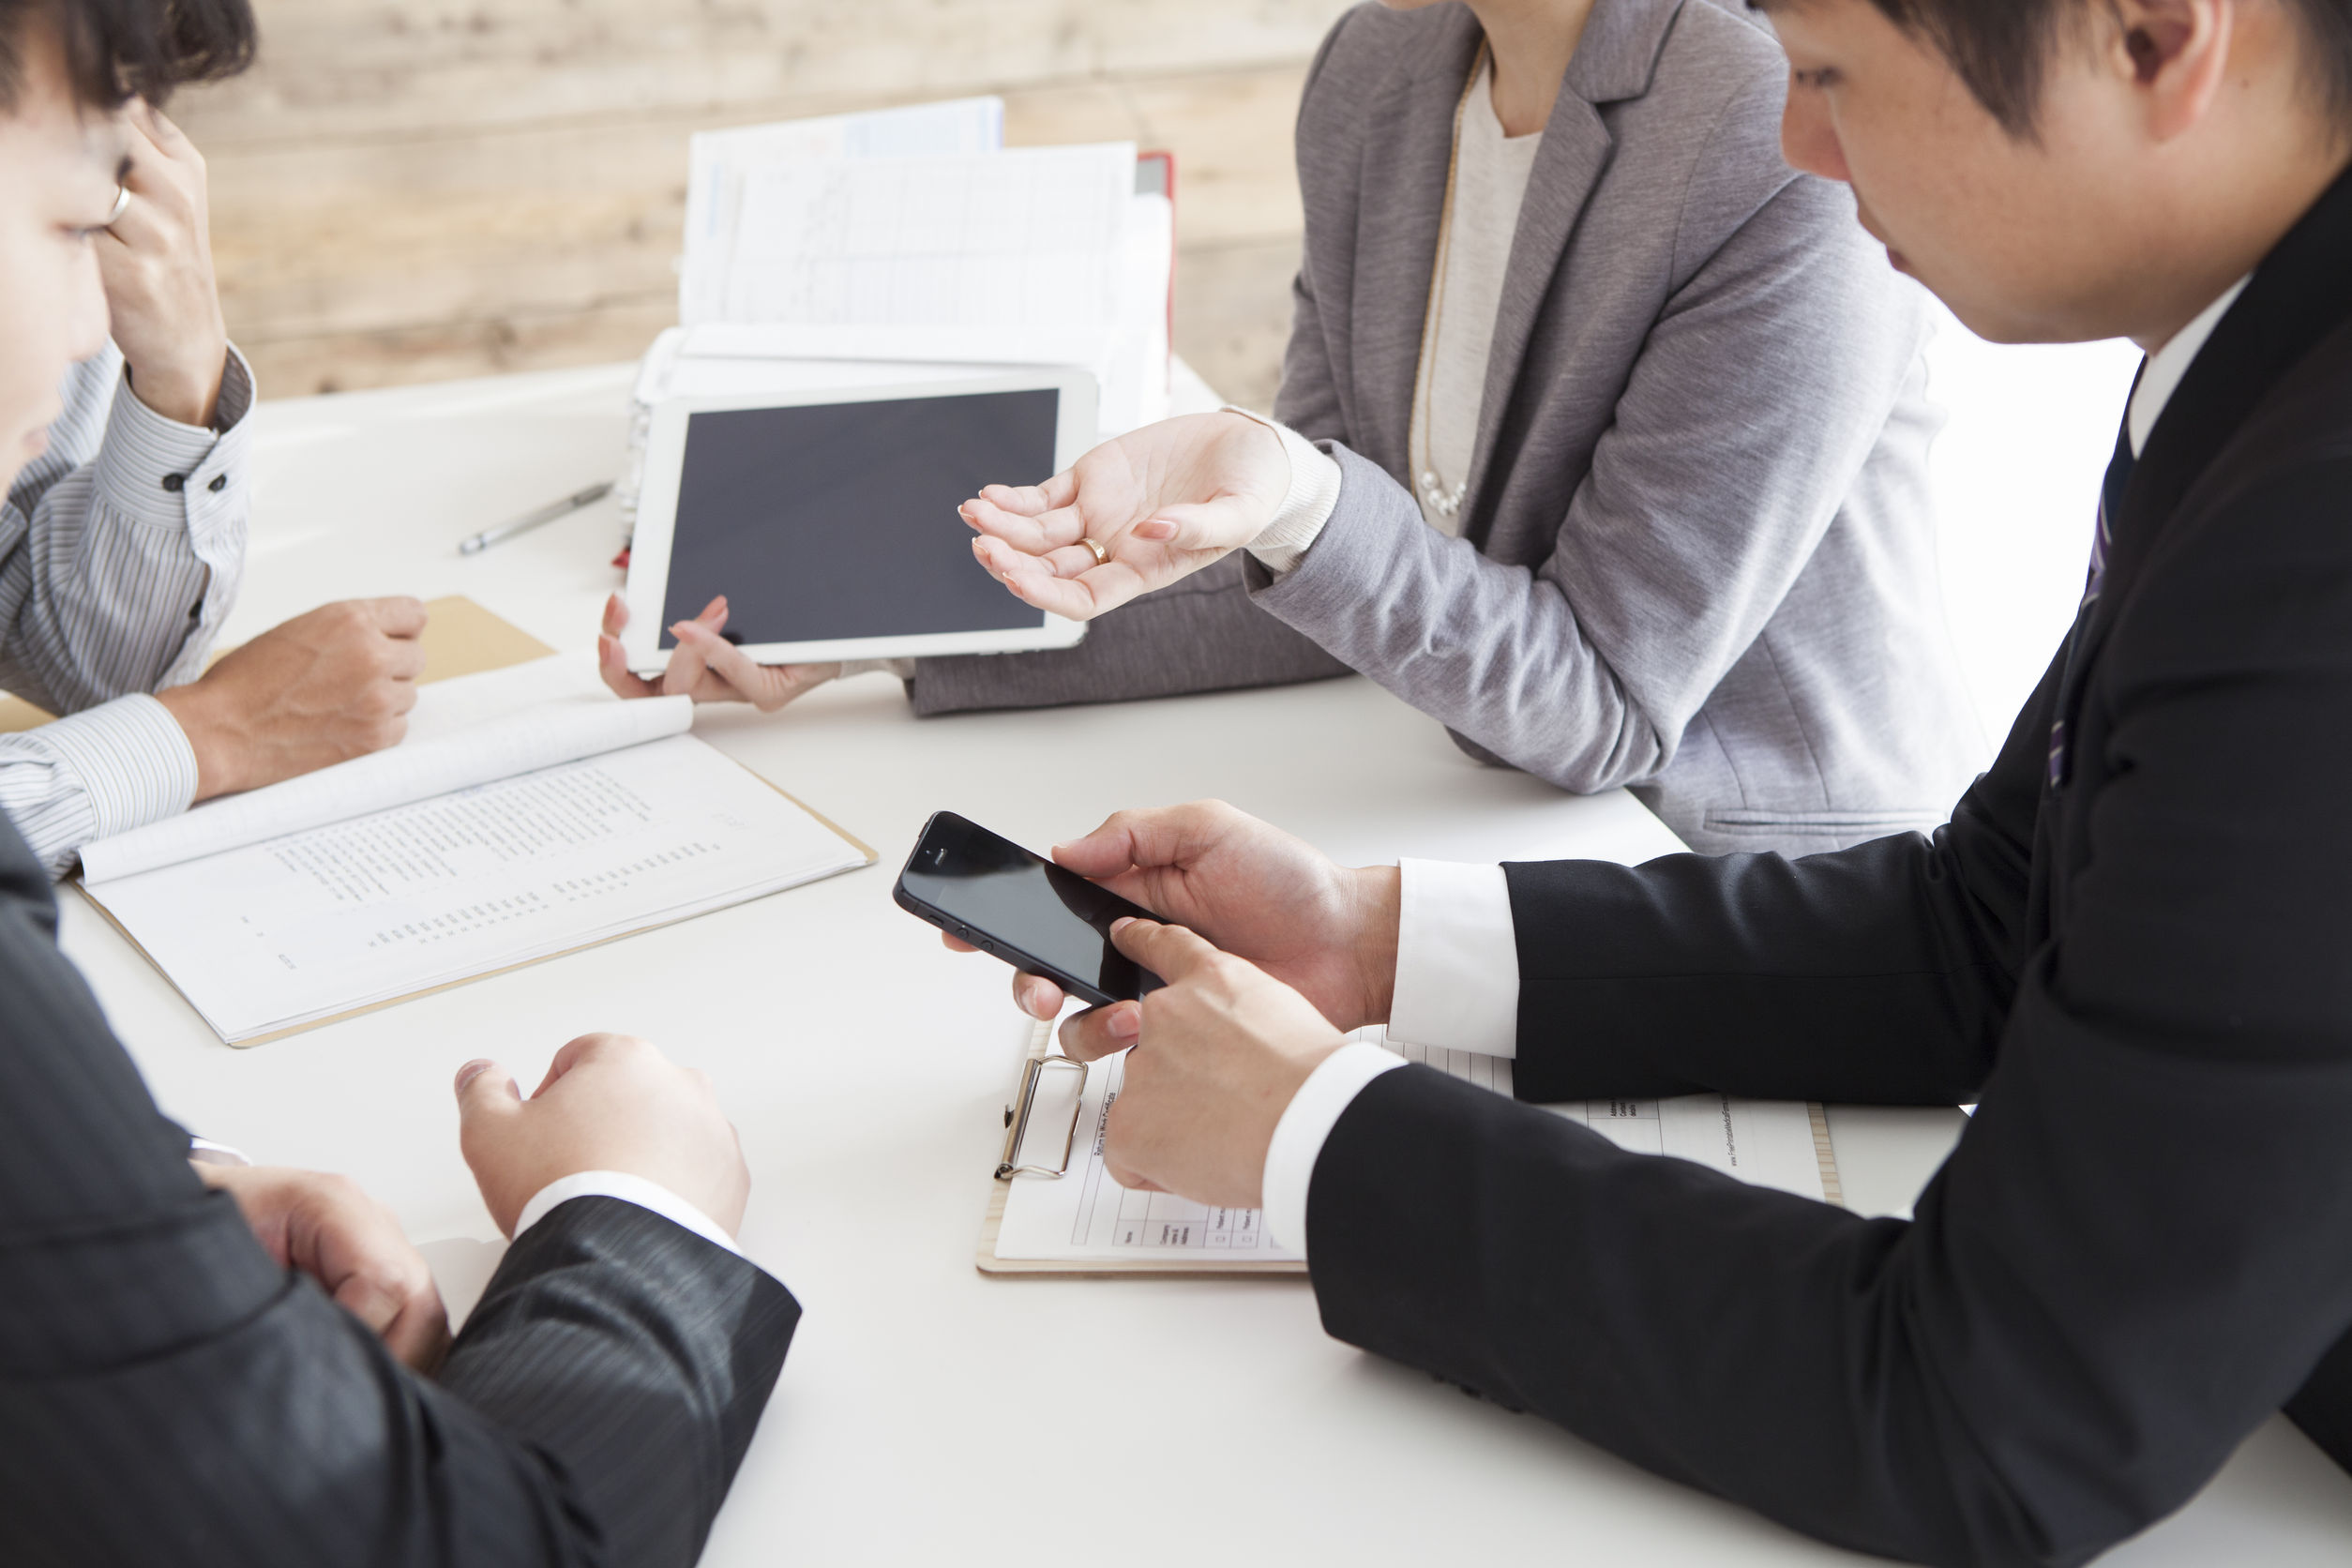 49819584 - group of successful business people having meeting together